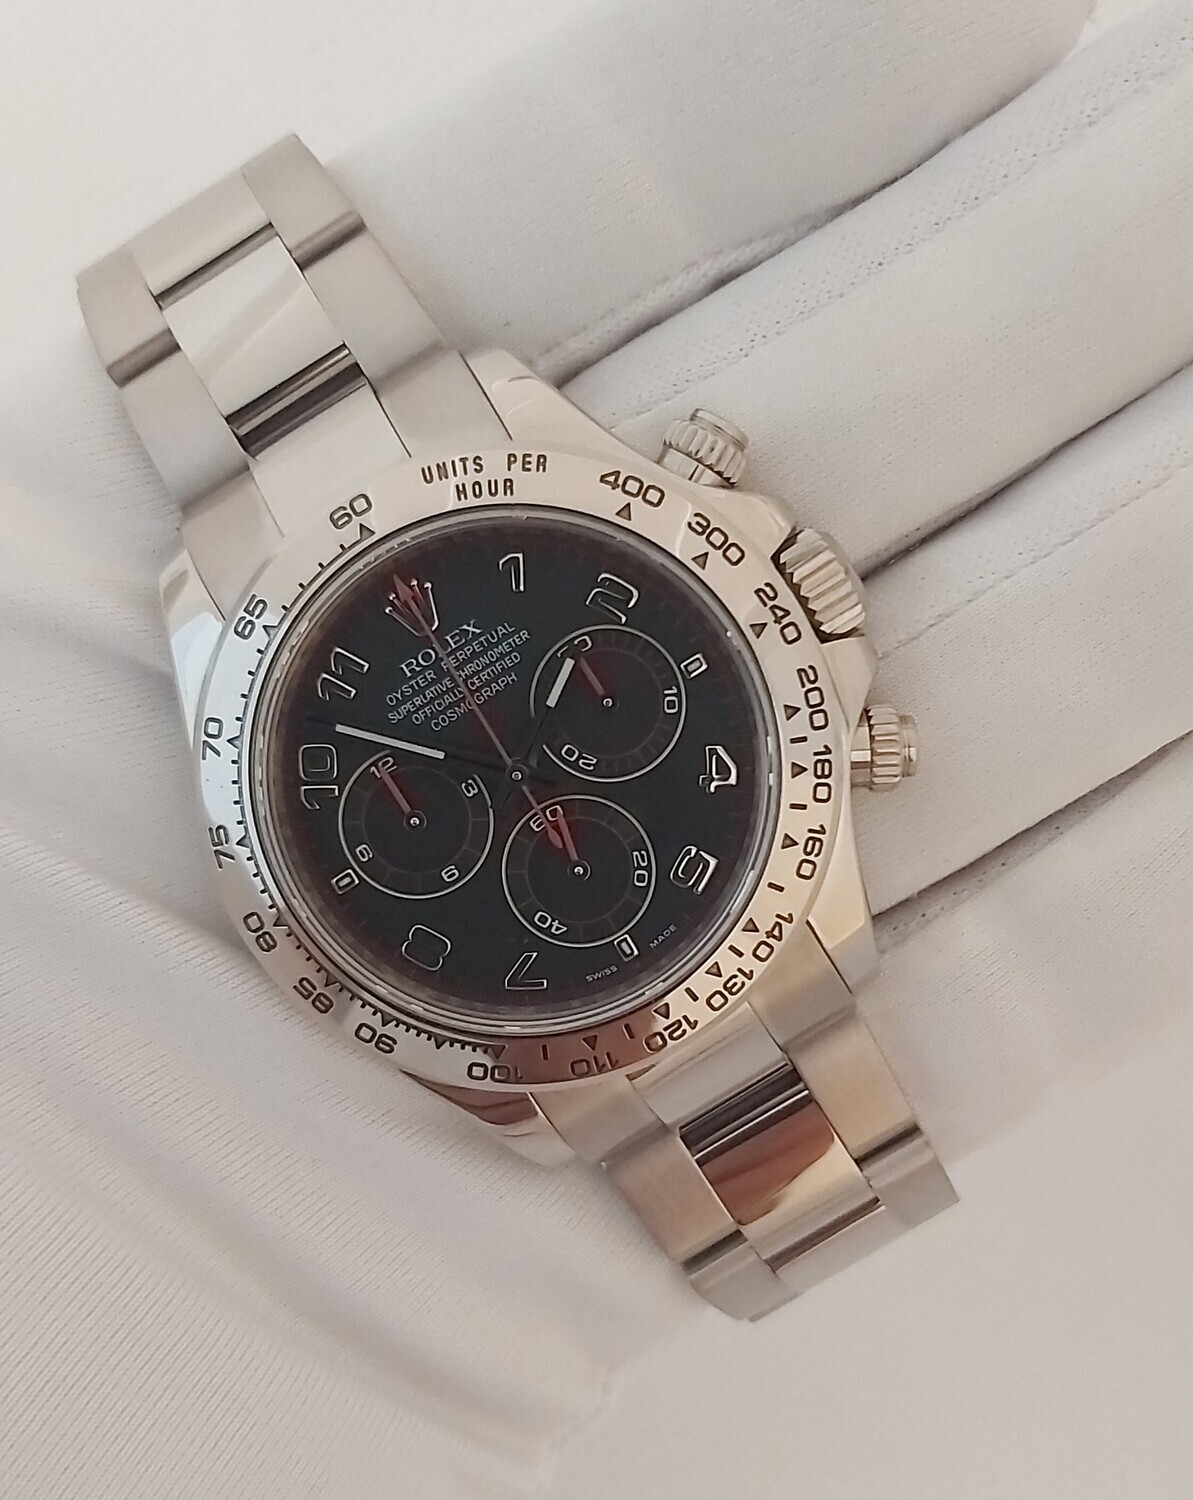 Rolex Daytona 116509 2017 White Gold - Racing Dial - Box & Papers